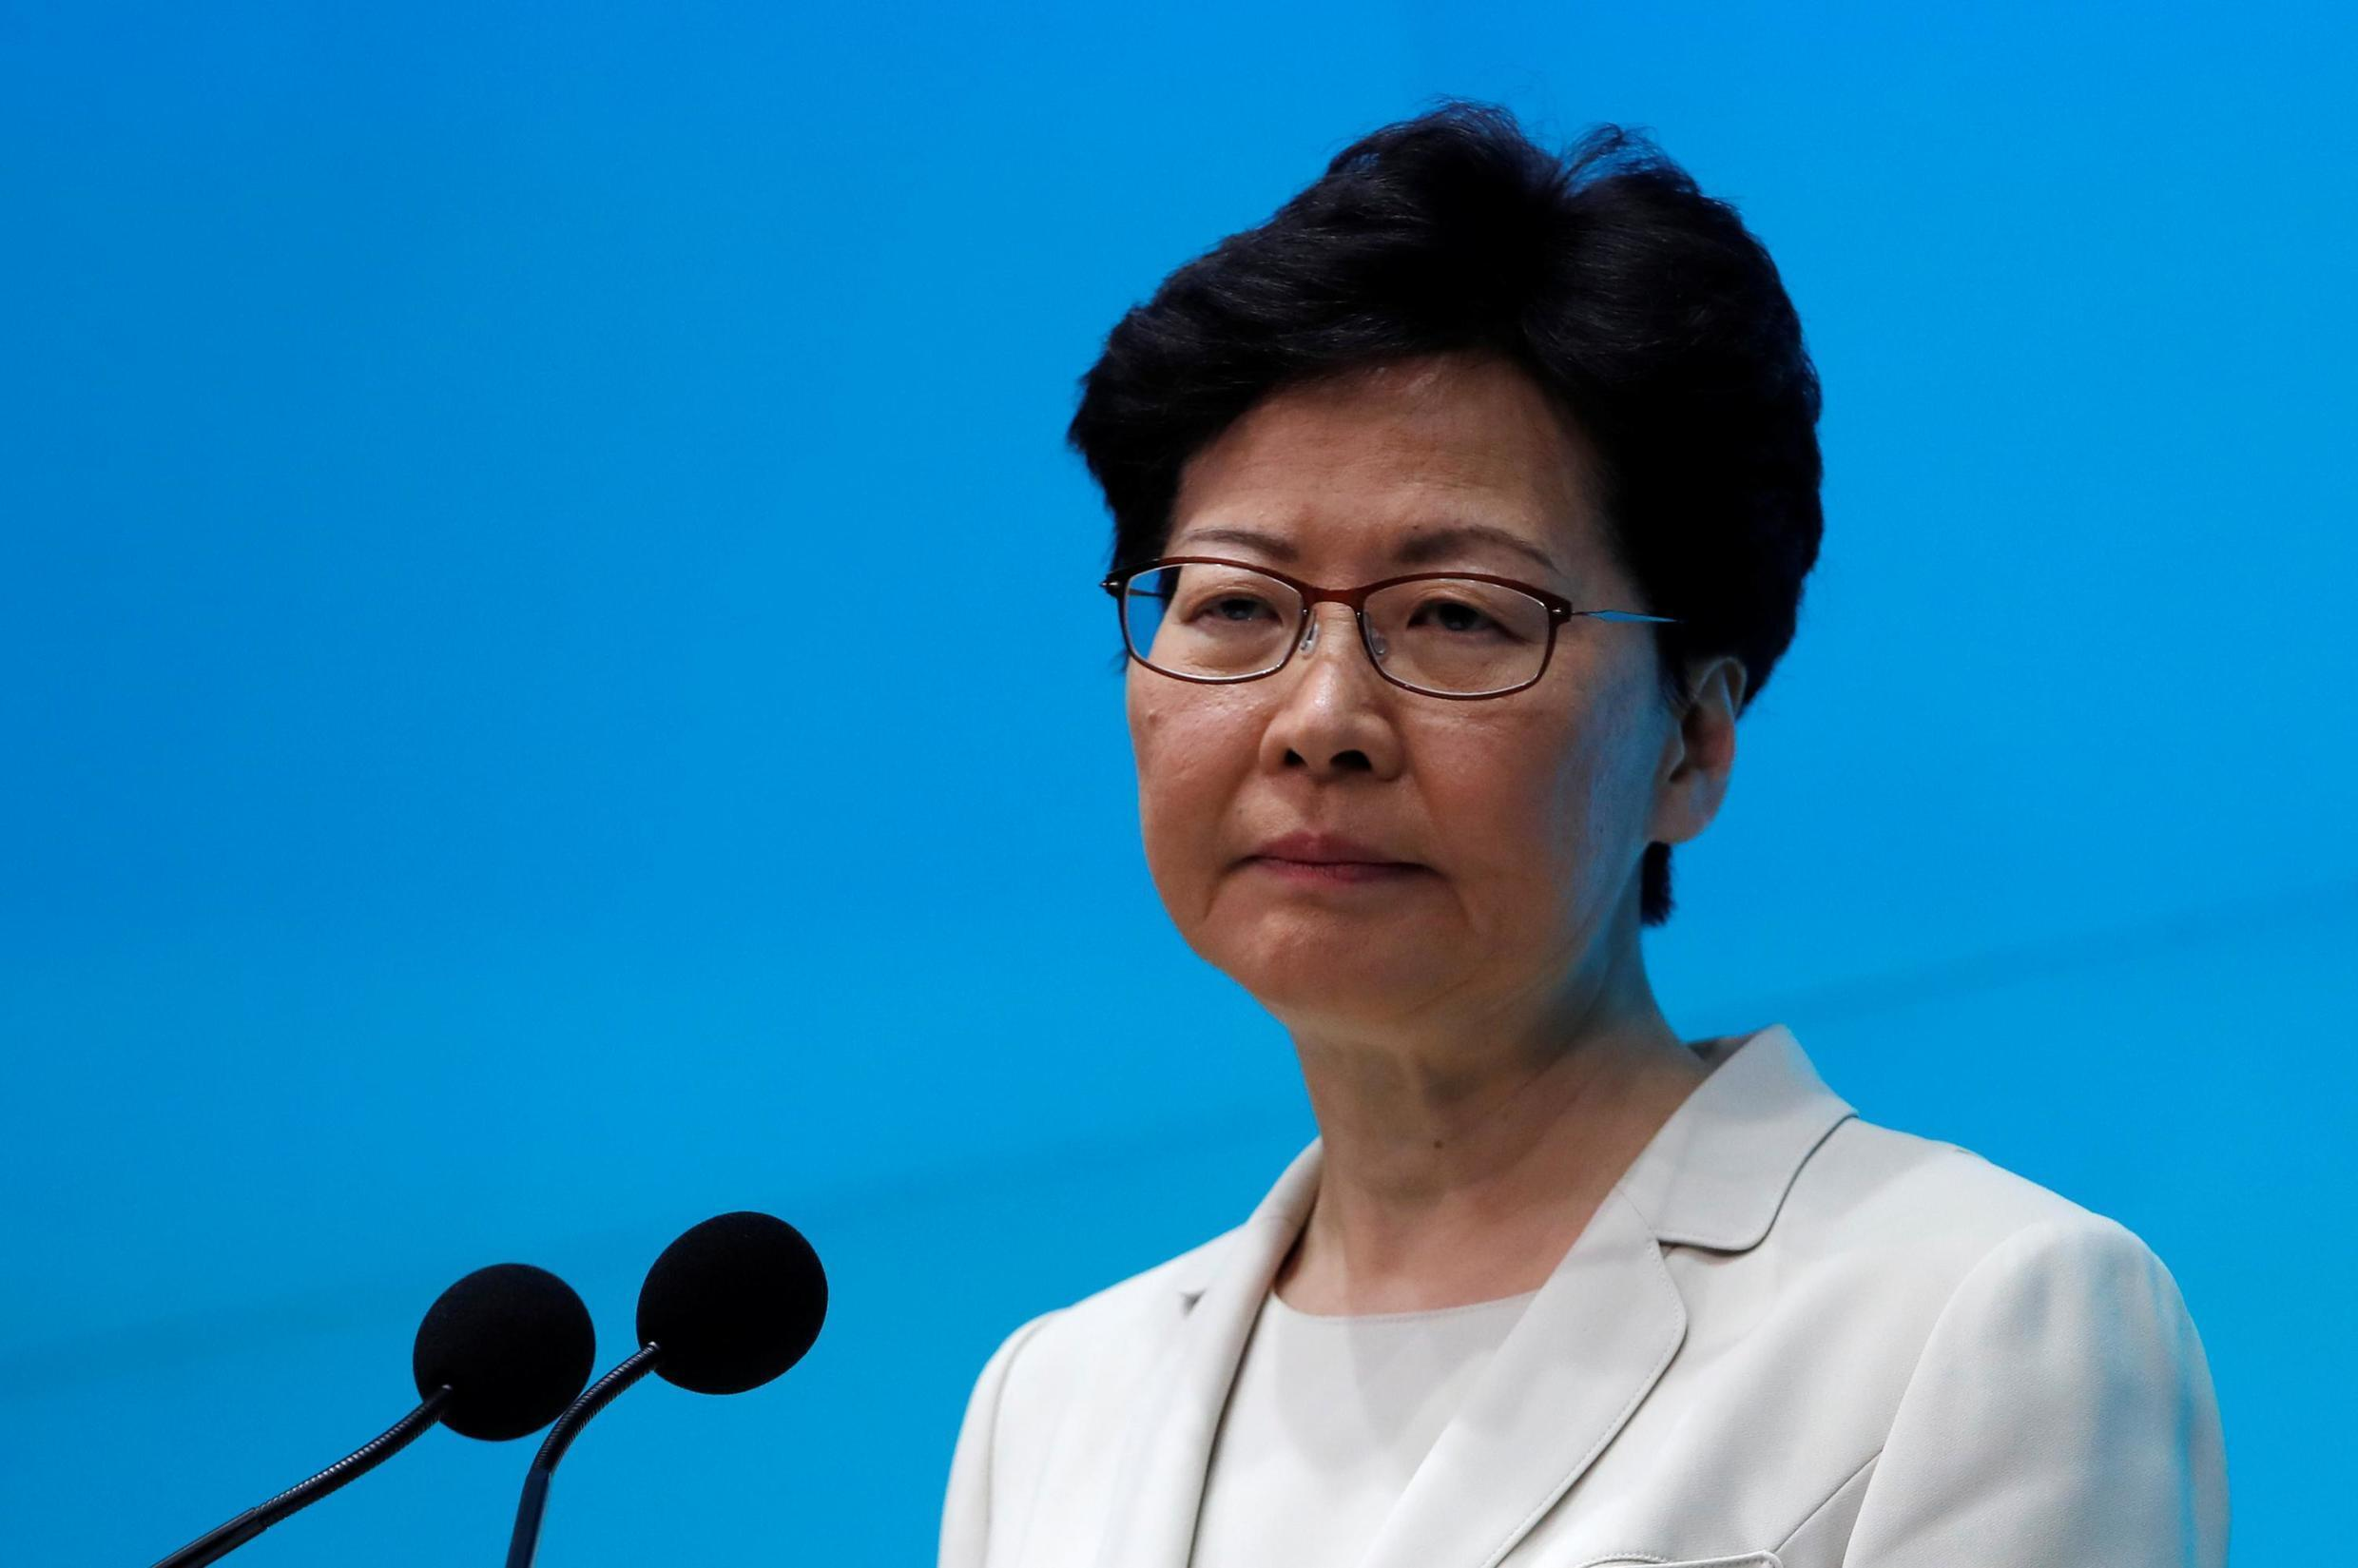 Hong Kong Chief Executive Carrie Lam attends a news conference in Hong Kong, China, 18 June 2019.